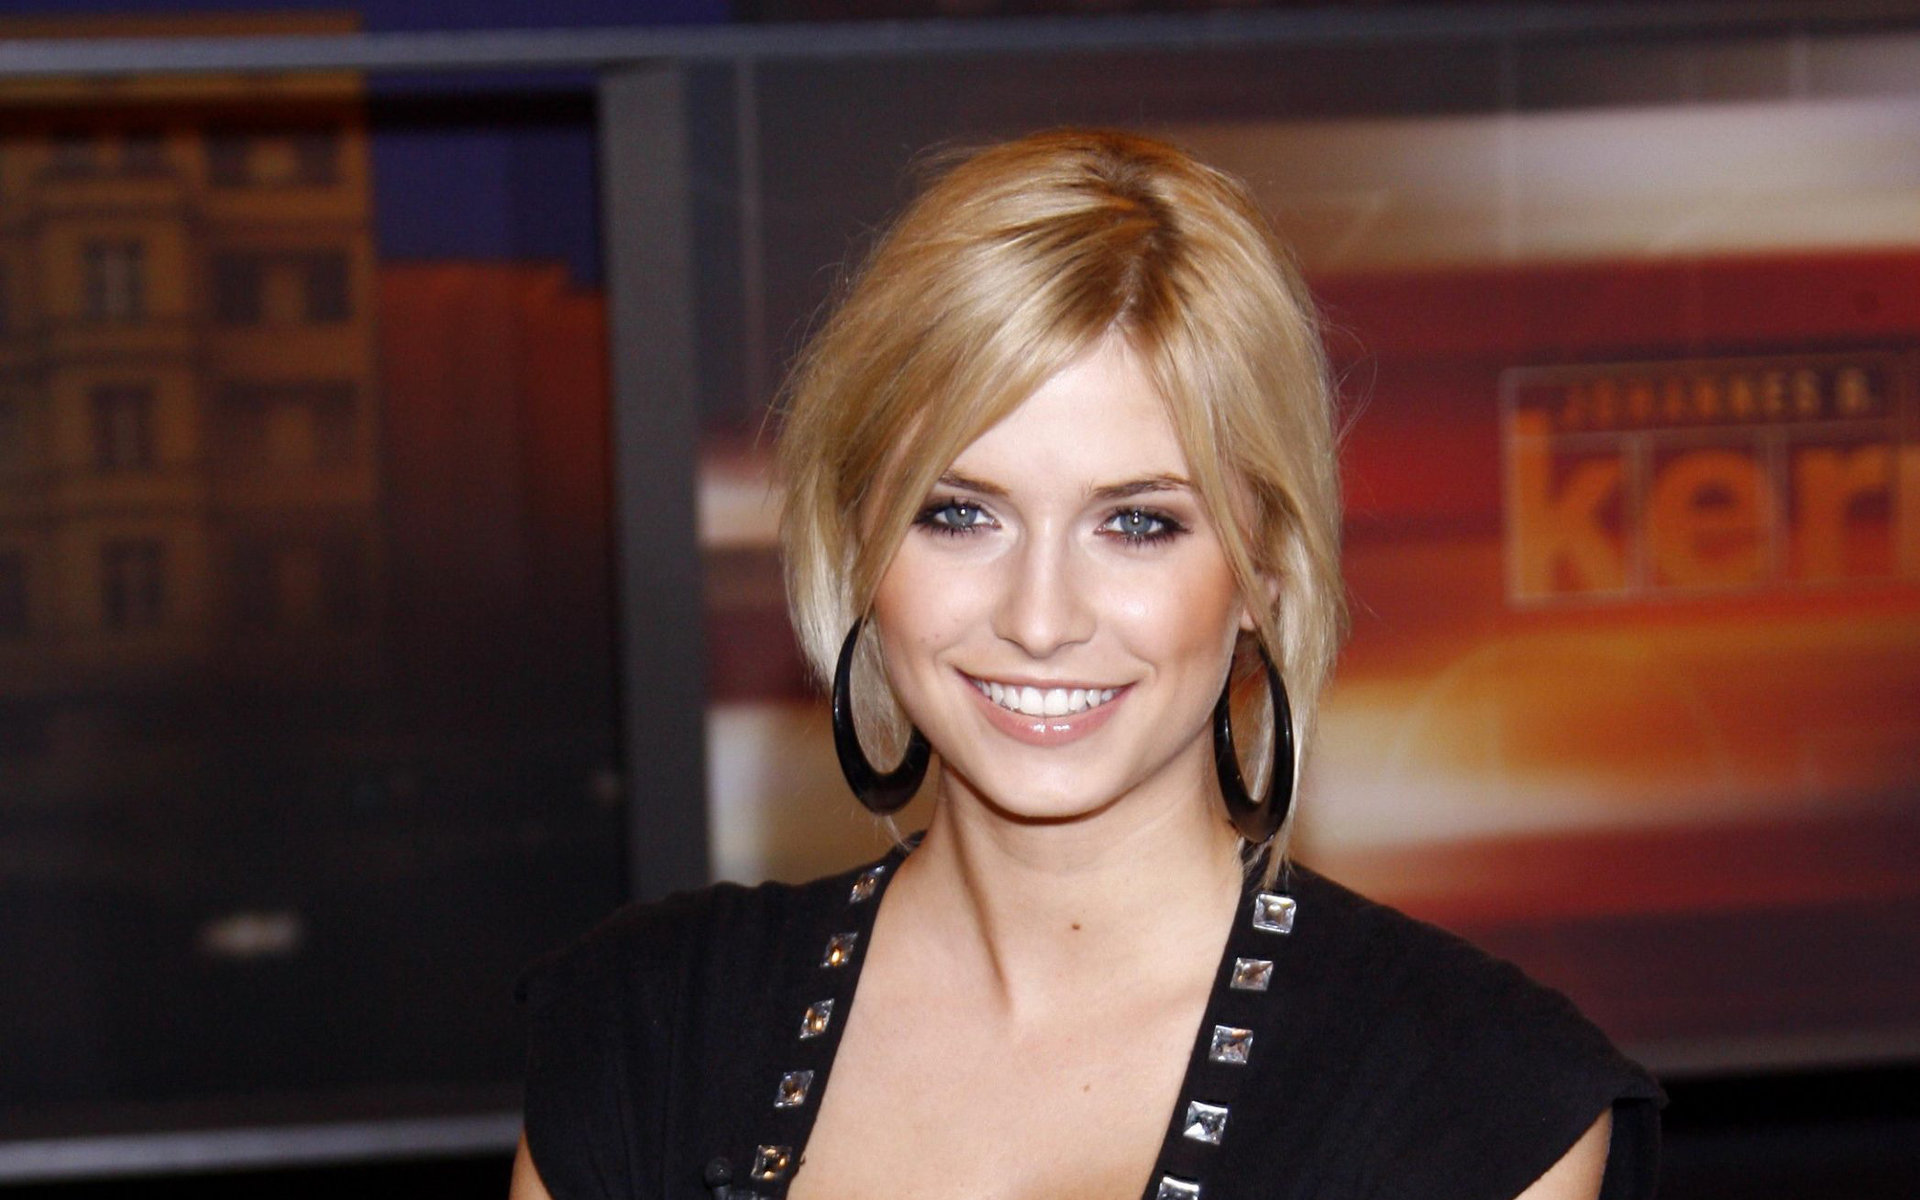 Download hd 1920x1200 Lena Gercke desktop wallpaper ID:465977 for free